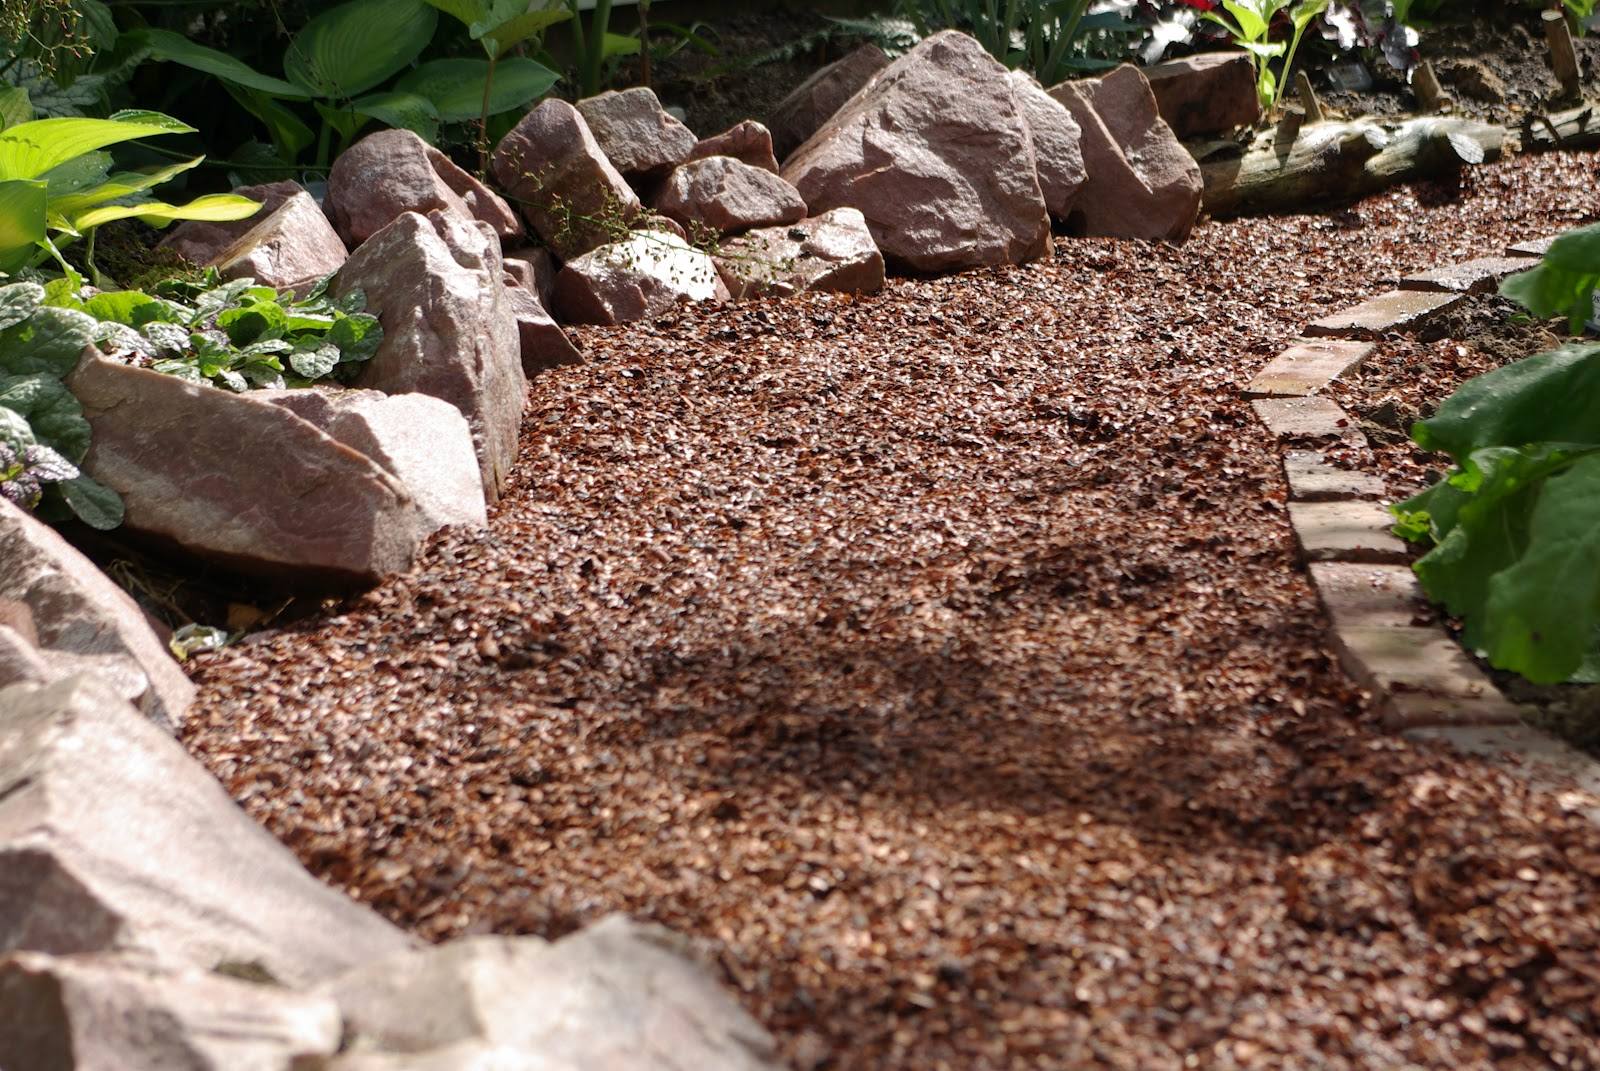 Backyard Mulch Jump : The big warning with cocoa hull mulch is if you have dogs They may be